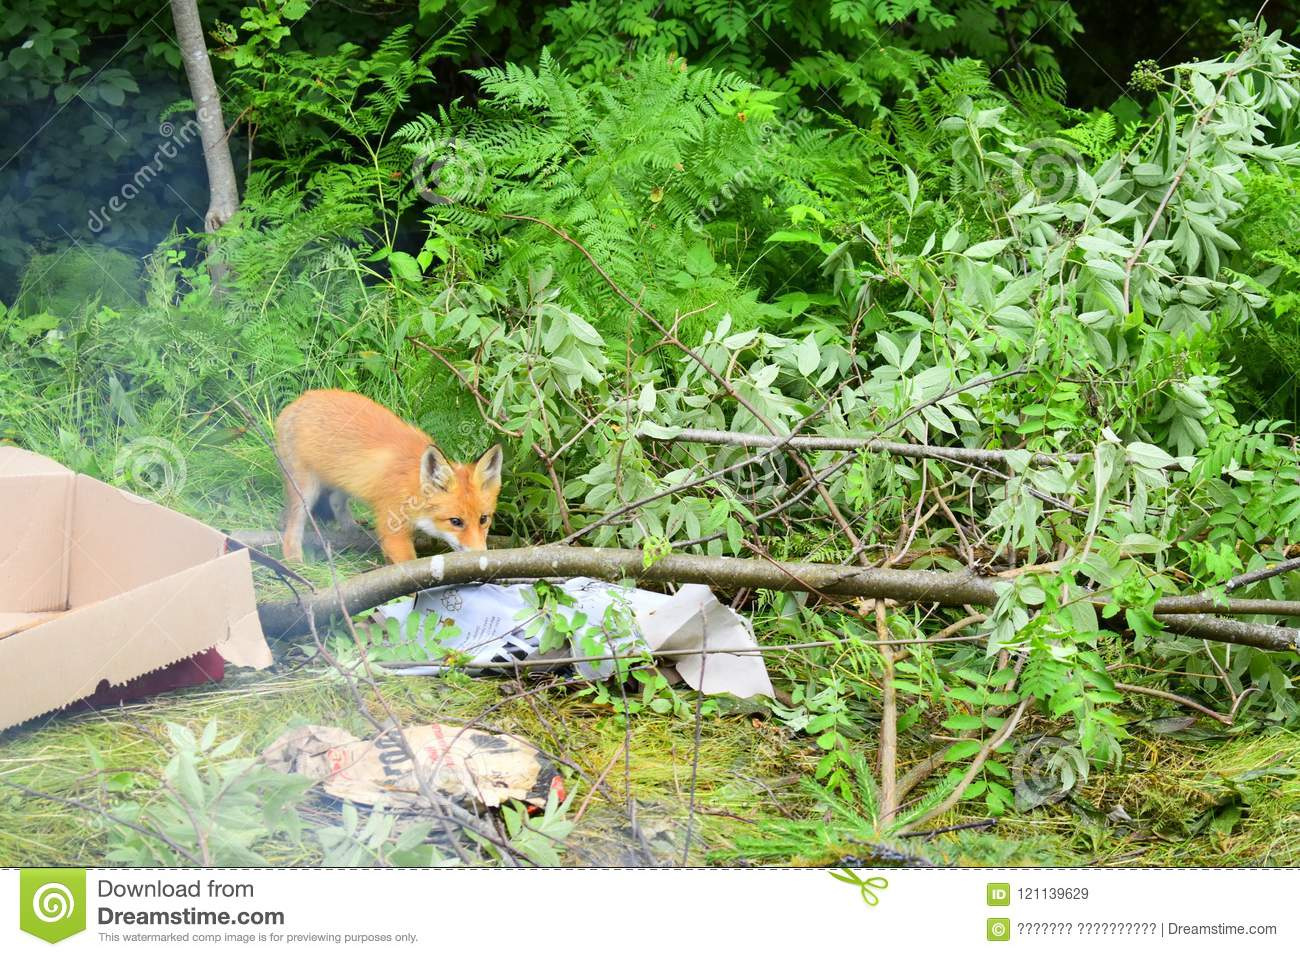 Little Fox is hunting for food in the forest